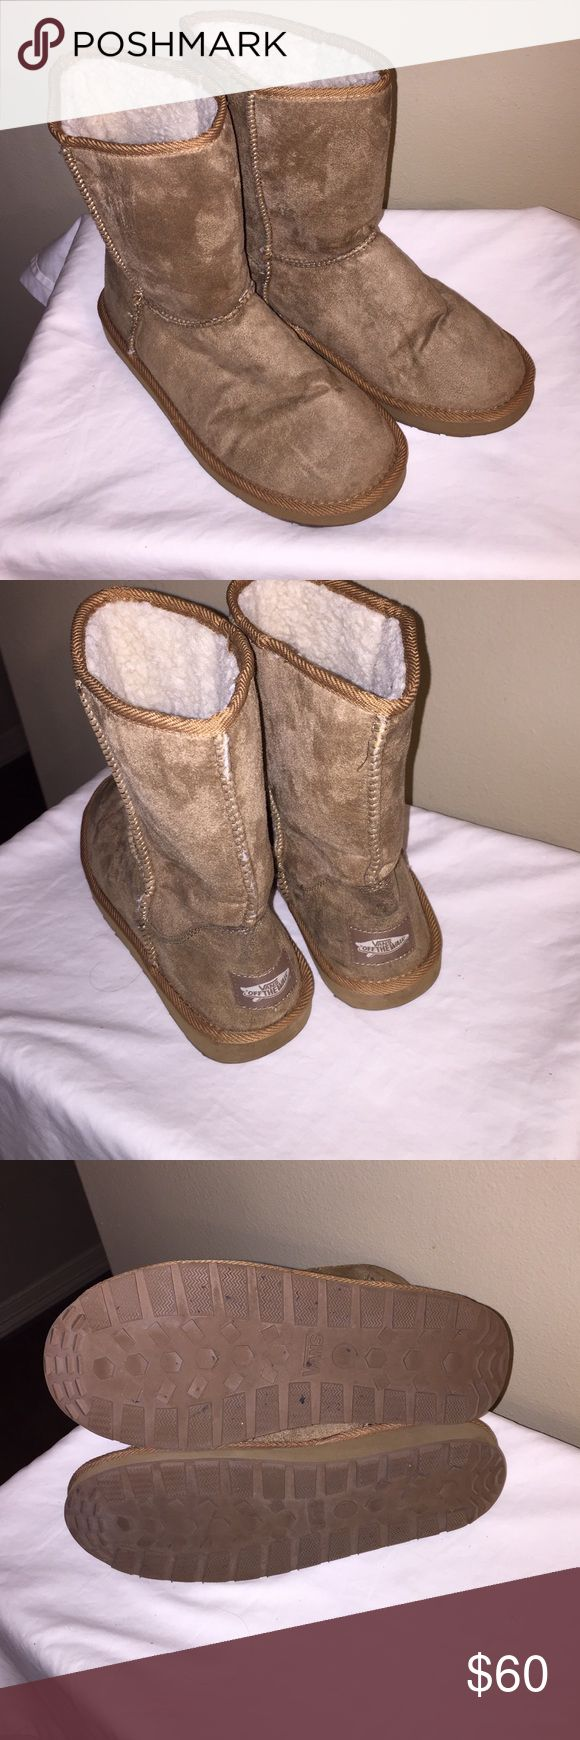 Vans Boots (size 8) Very nice Vans boots only used less than two times.  Boots excellent conditions.  no box Vans Shoes